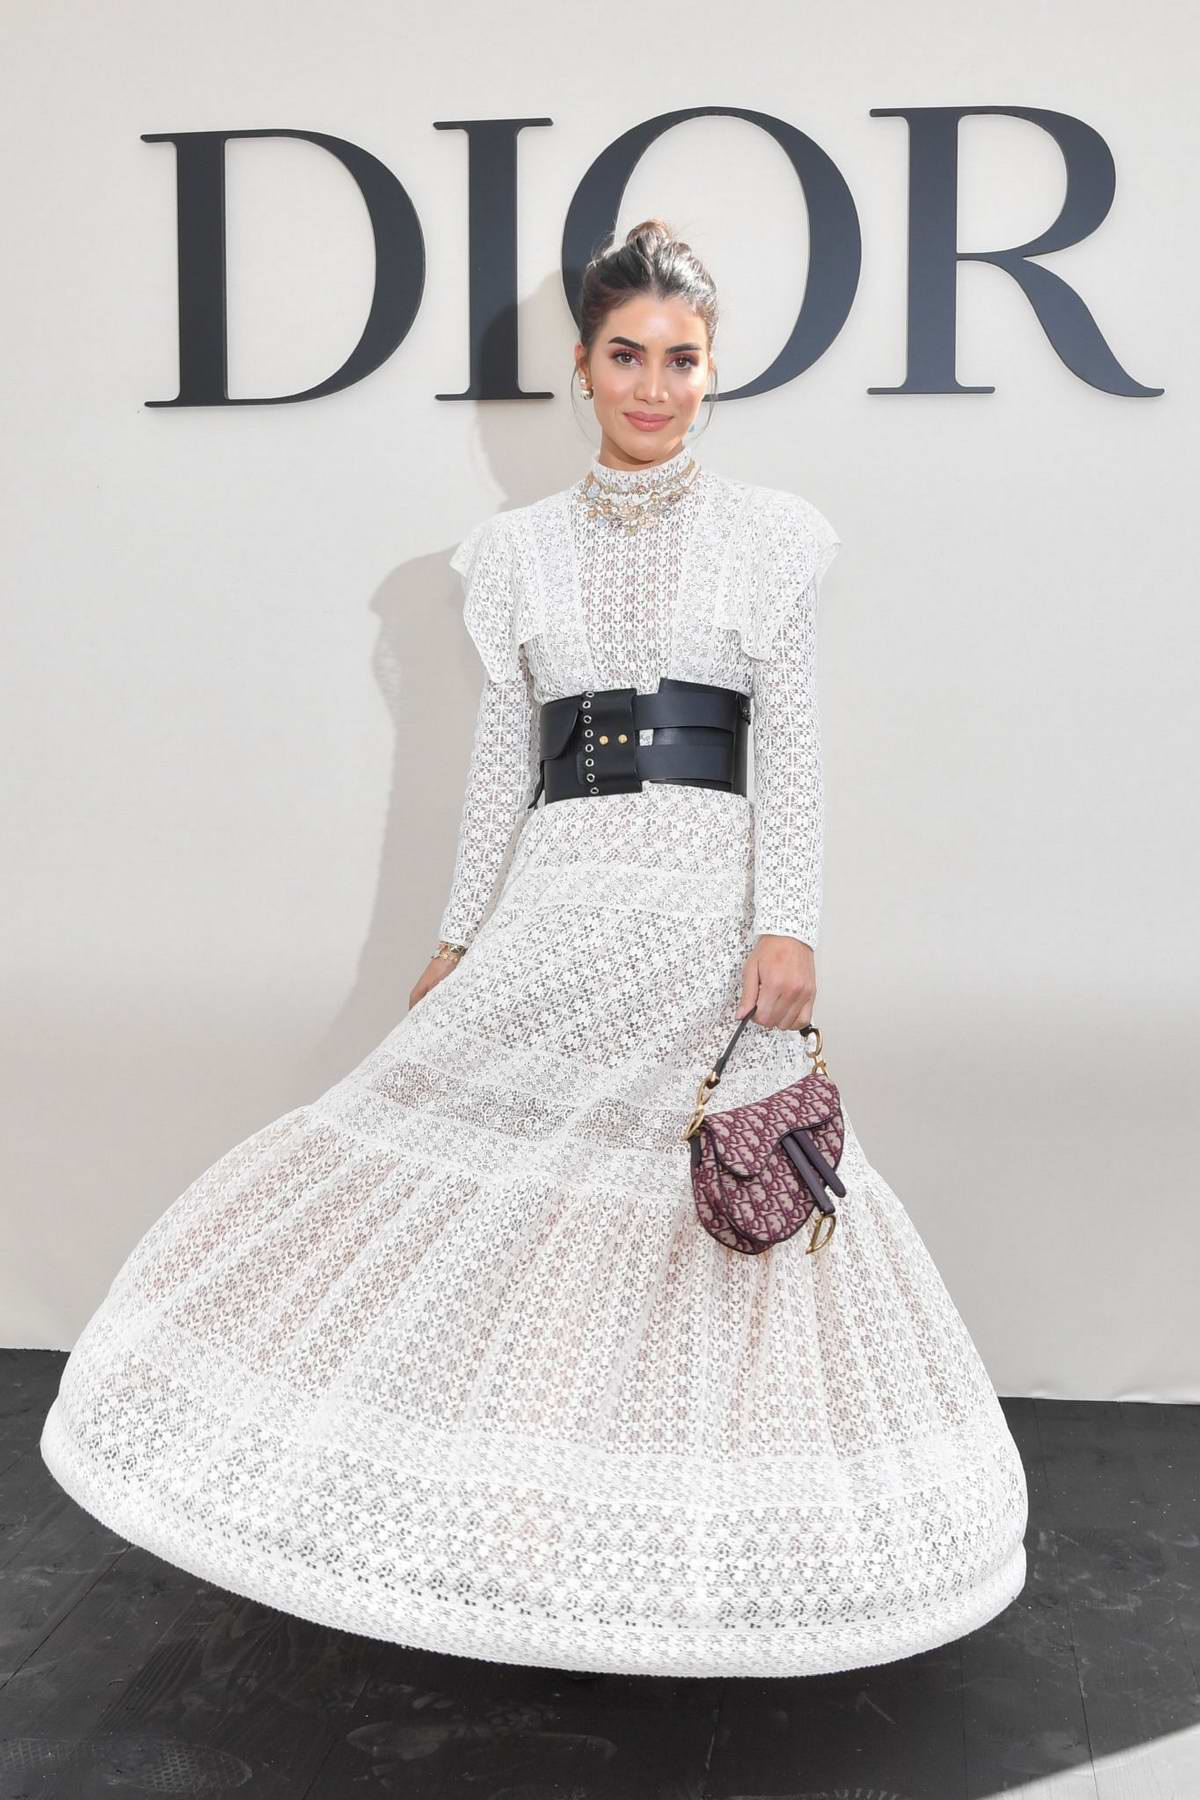 Camila Coelho attends the Christian Dior Show during Paris Fashion Week in Paris, France